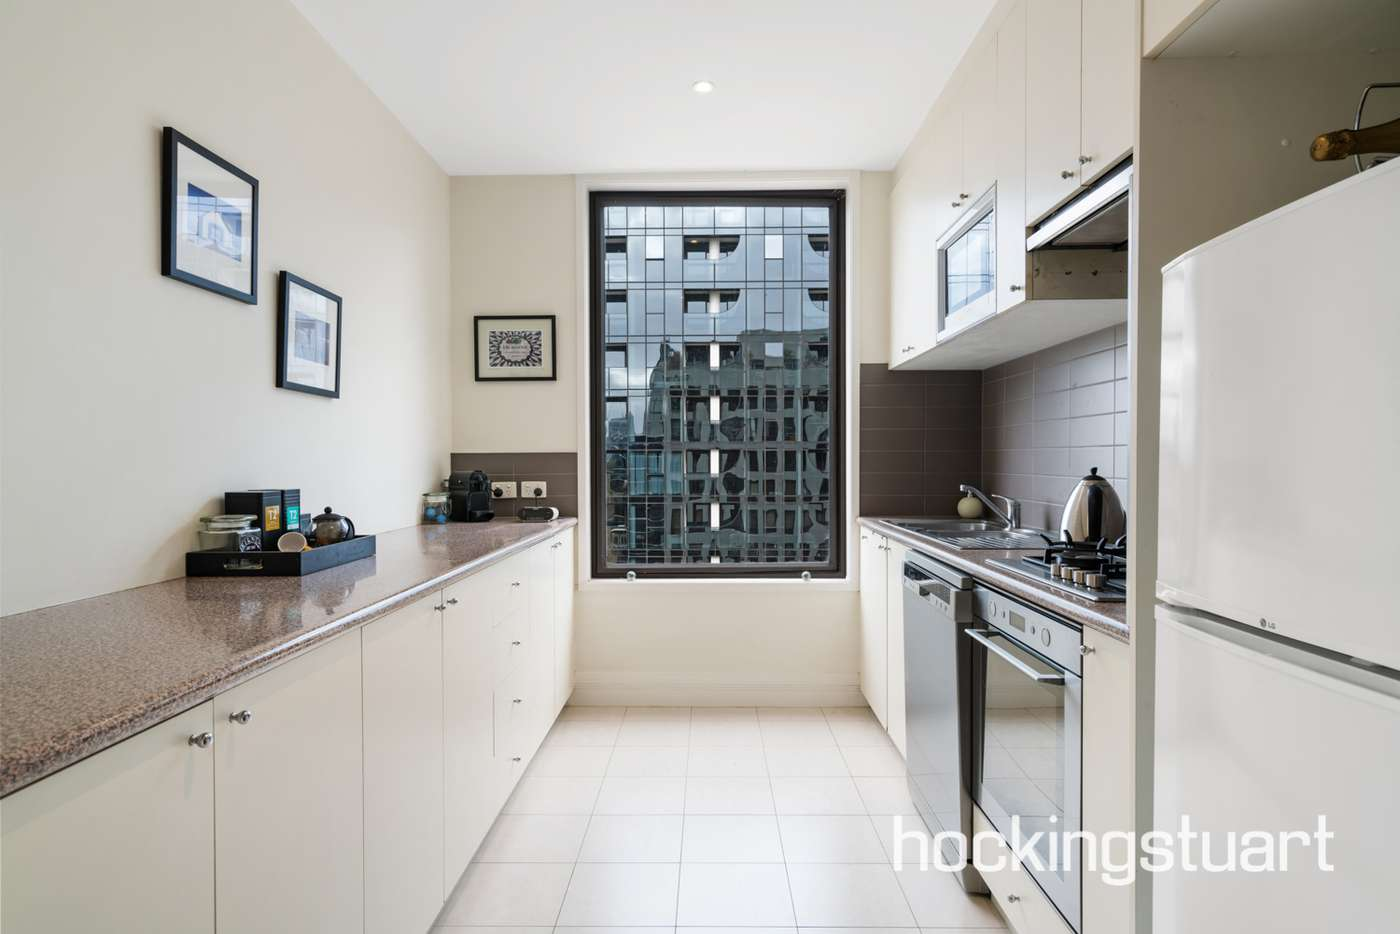 Fifth view of Homely apartment listing, 1003/442 St Kilda Road, Melbourne VIC 3004